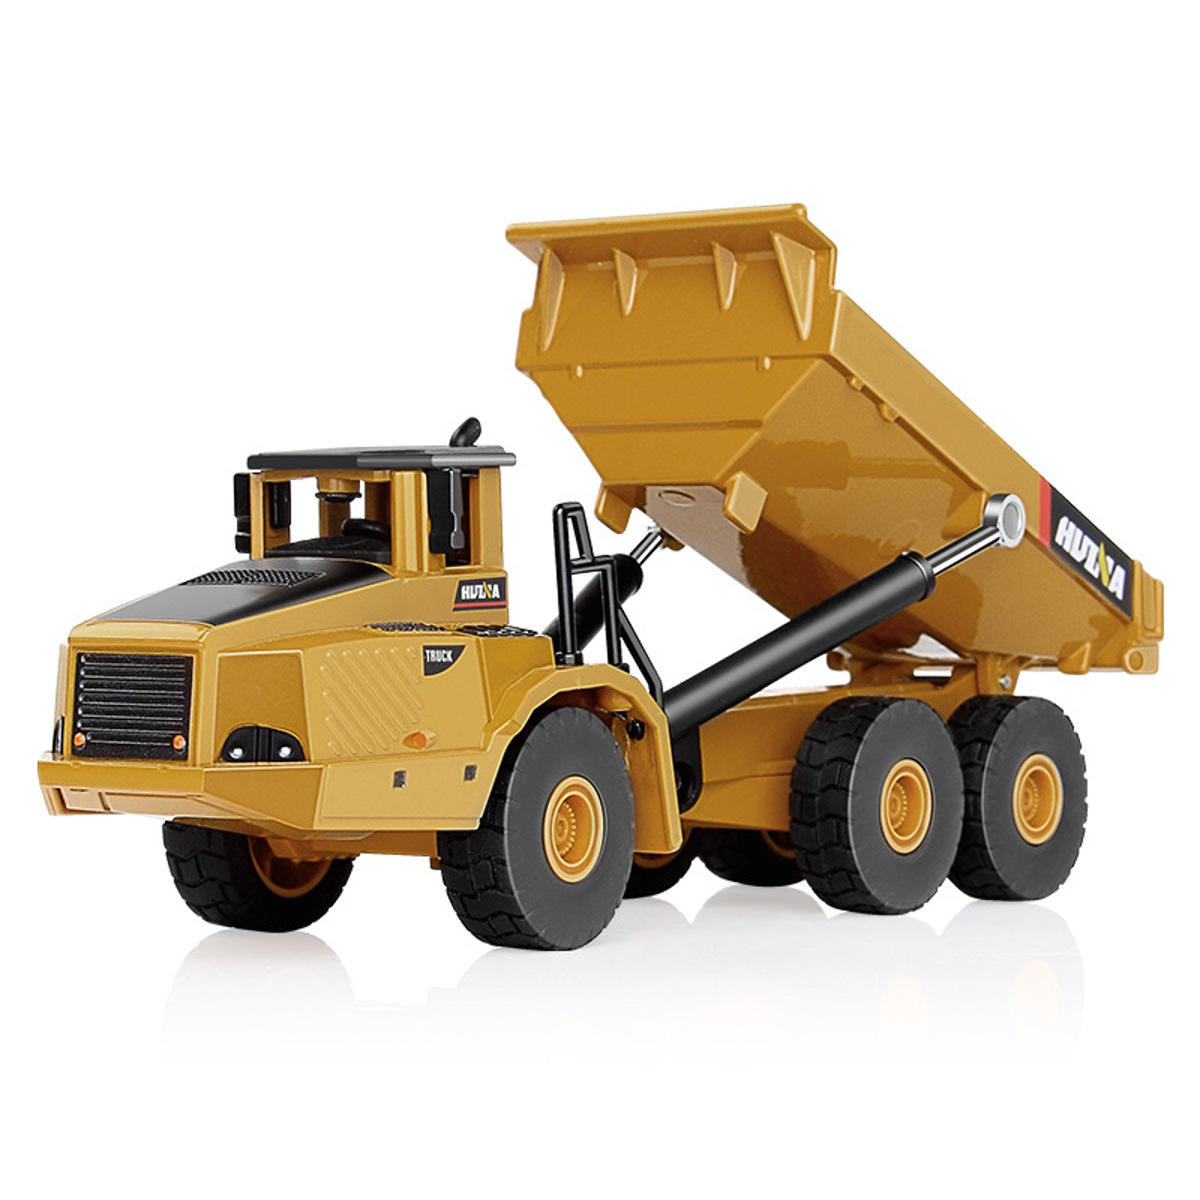 HUINA 7713-1 1/50 Scale Alloy Hydraulic Dump Truck Diecast Model Engineering Digging Toys